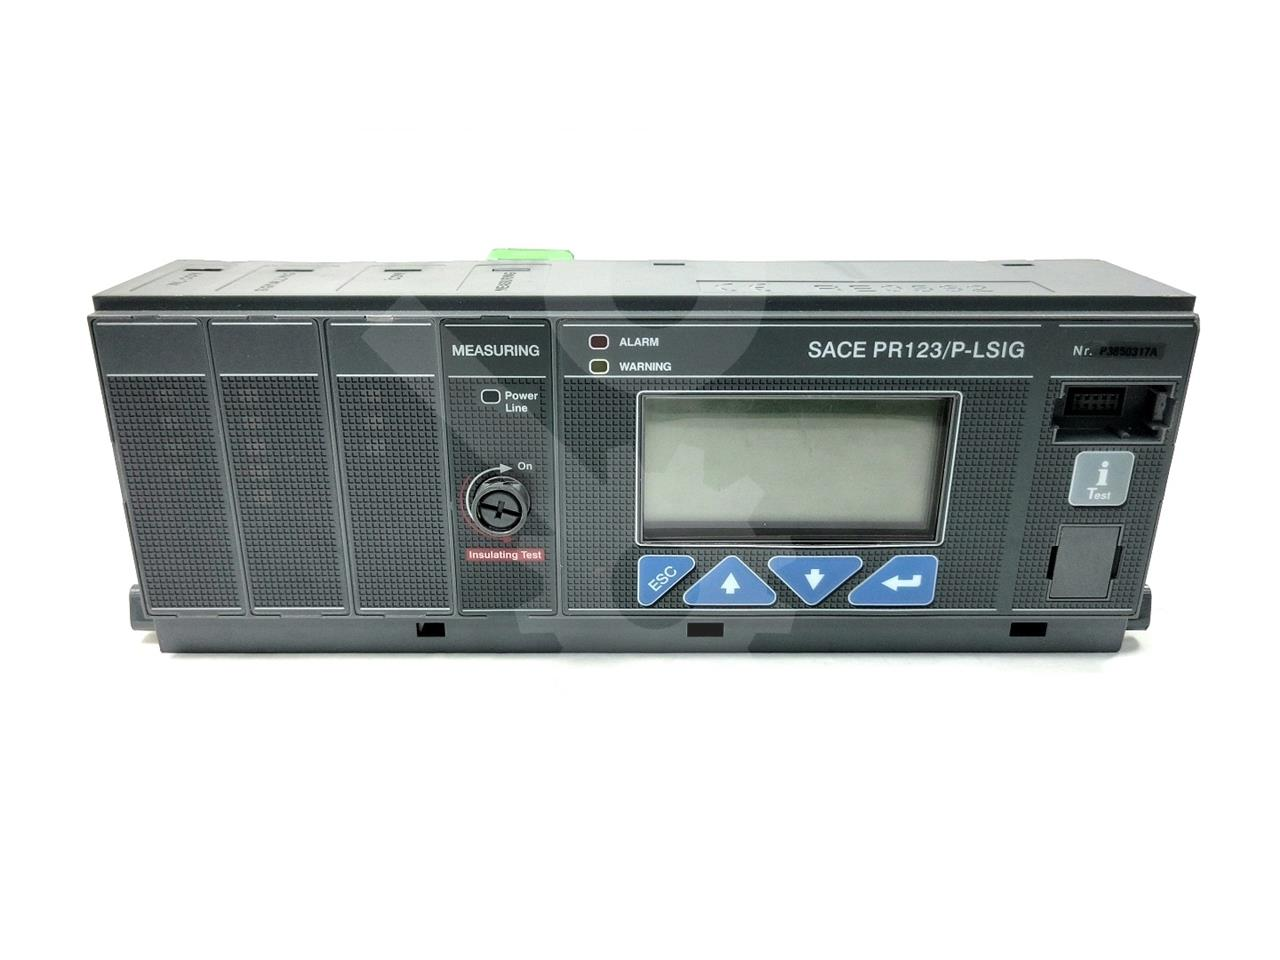 ABB / ITE / BBC ABB SACE PR123/P SOLID STATE PROGRAMMER LSIG